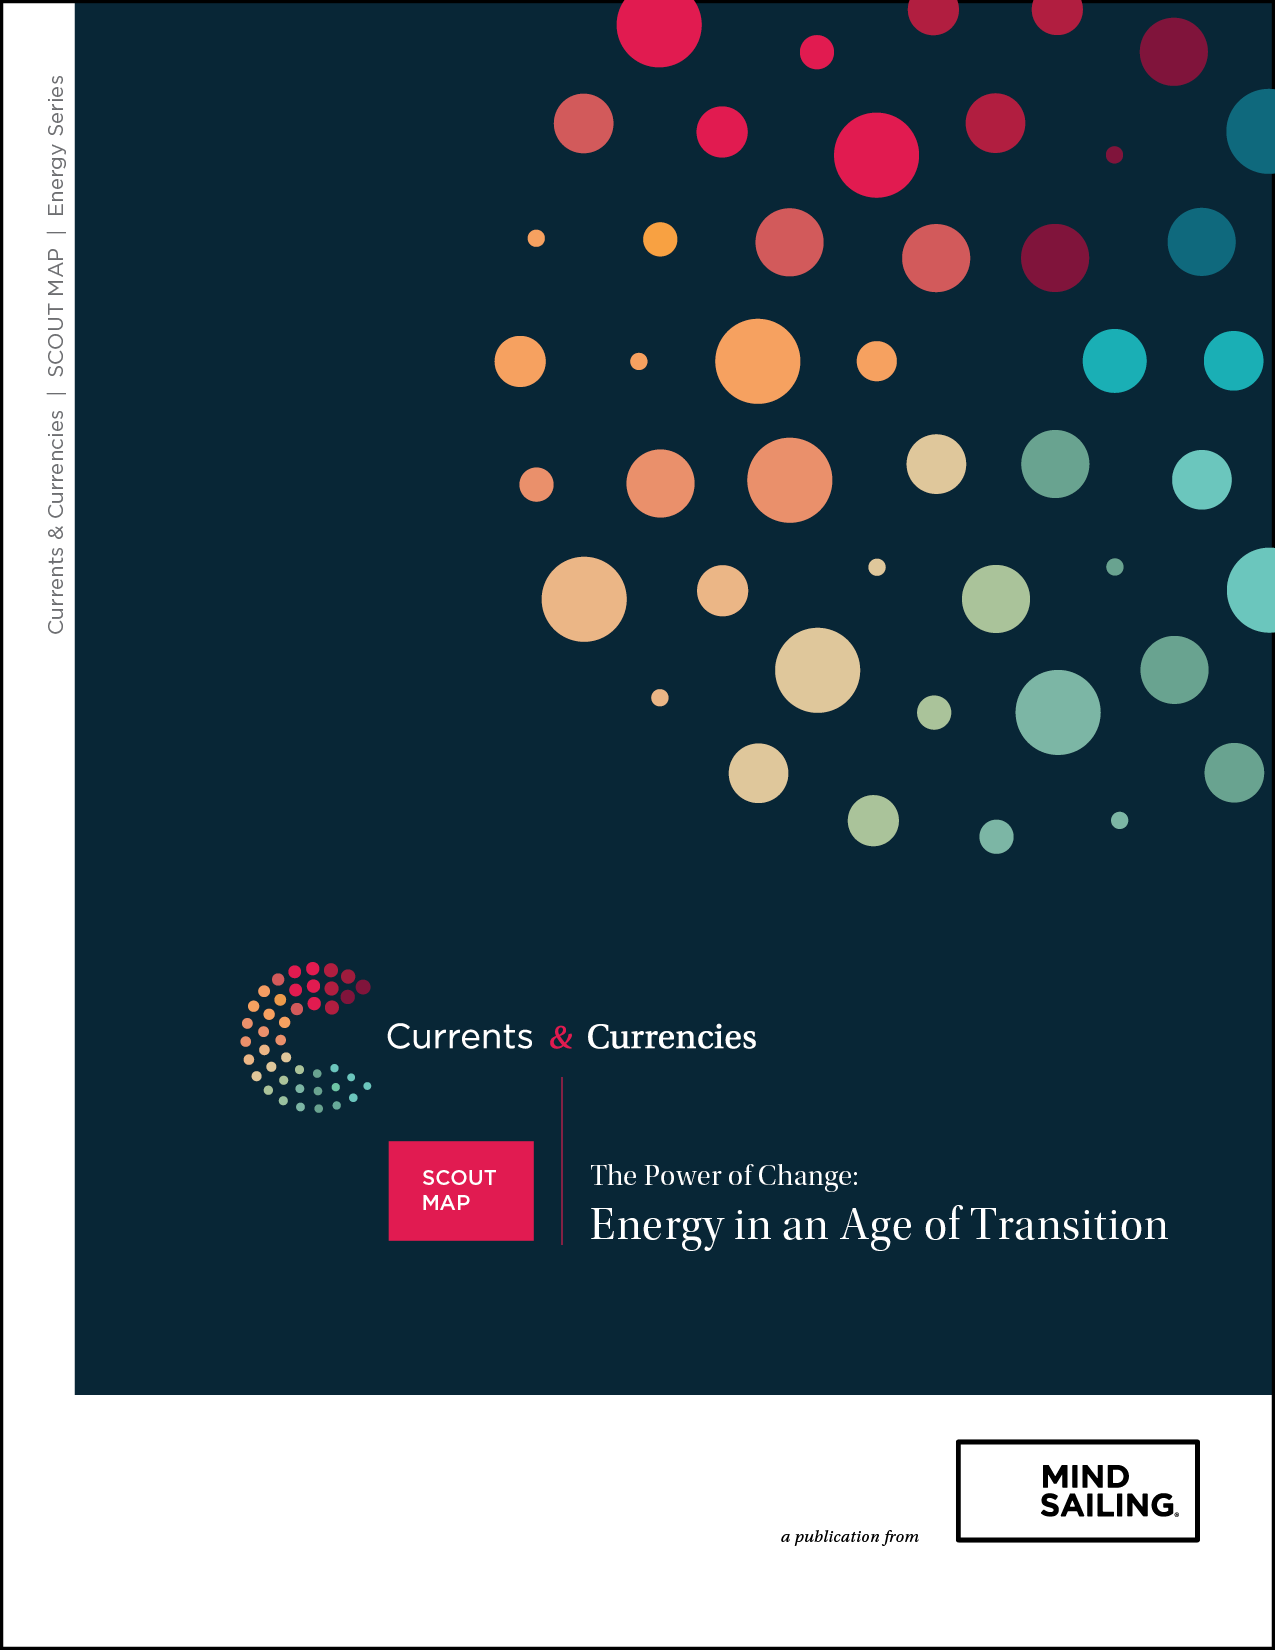 Energy in an age of transition white paper